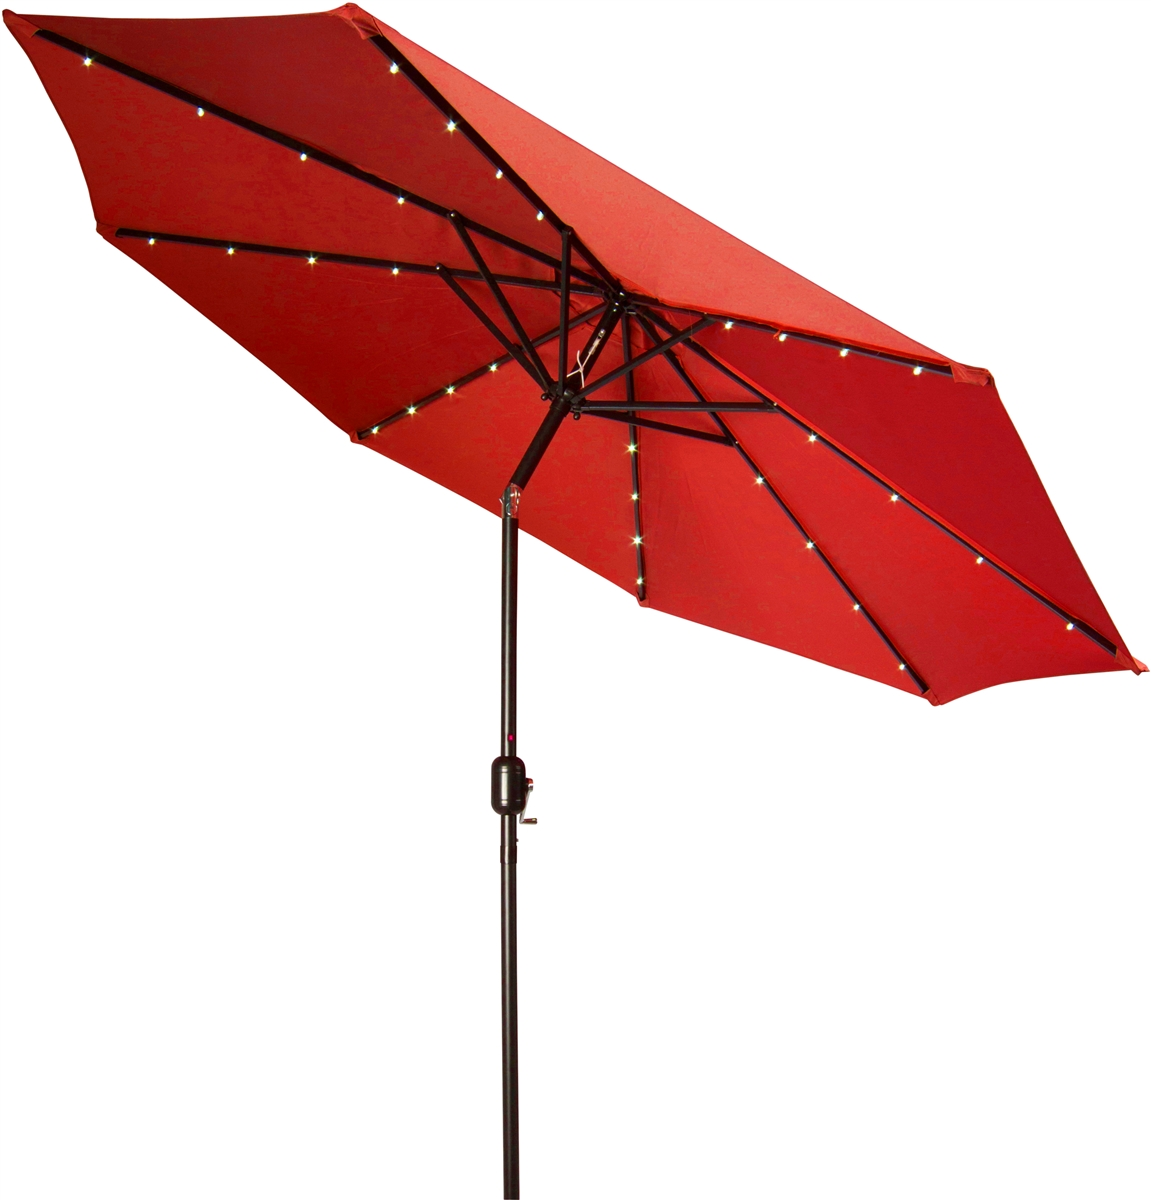 9u0027 Deluxe Solar Powered LED Lighted Patio Umbrella By Trademark Innovations  (Red)